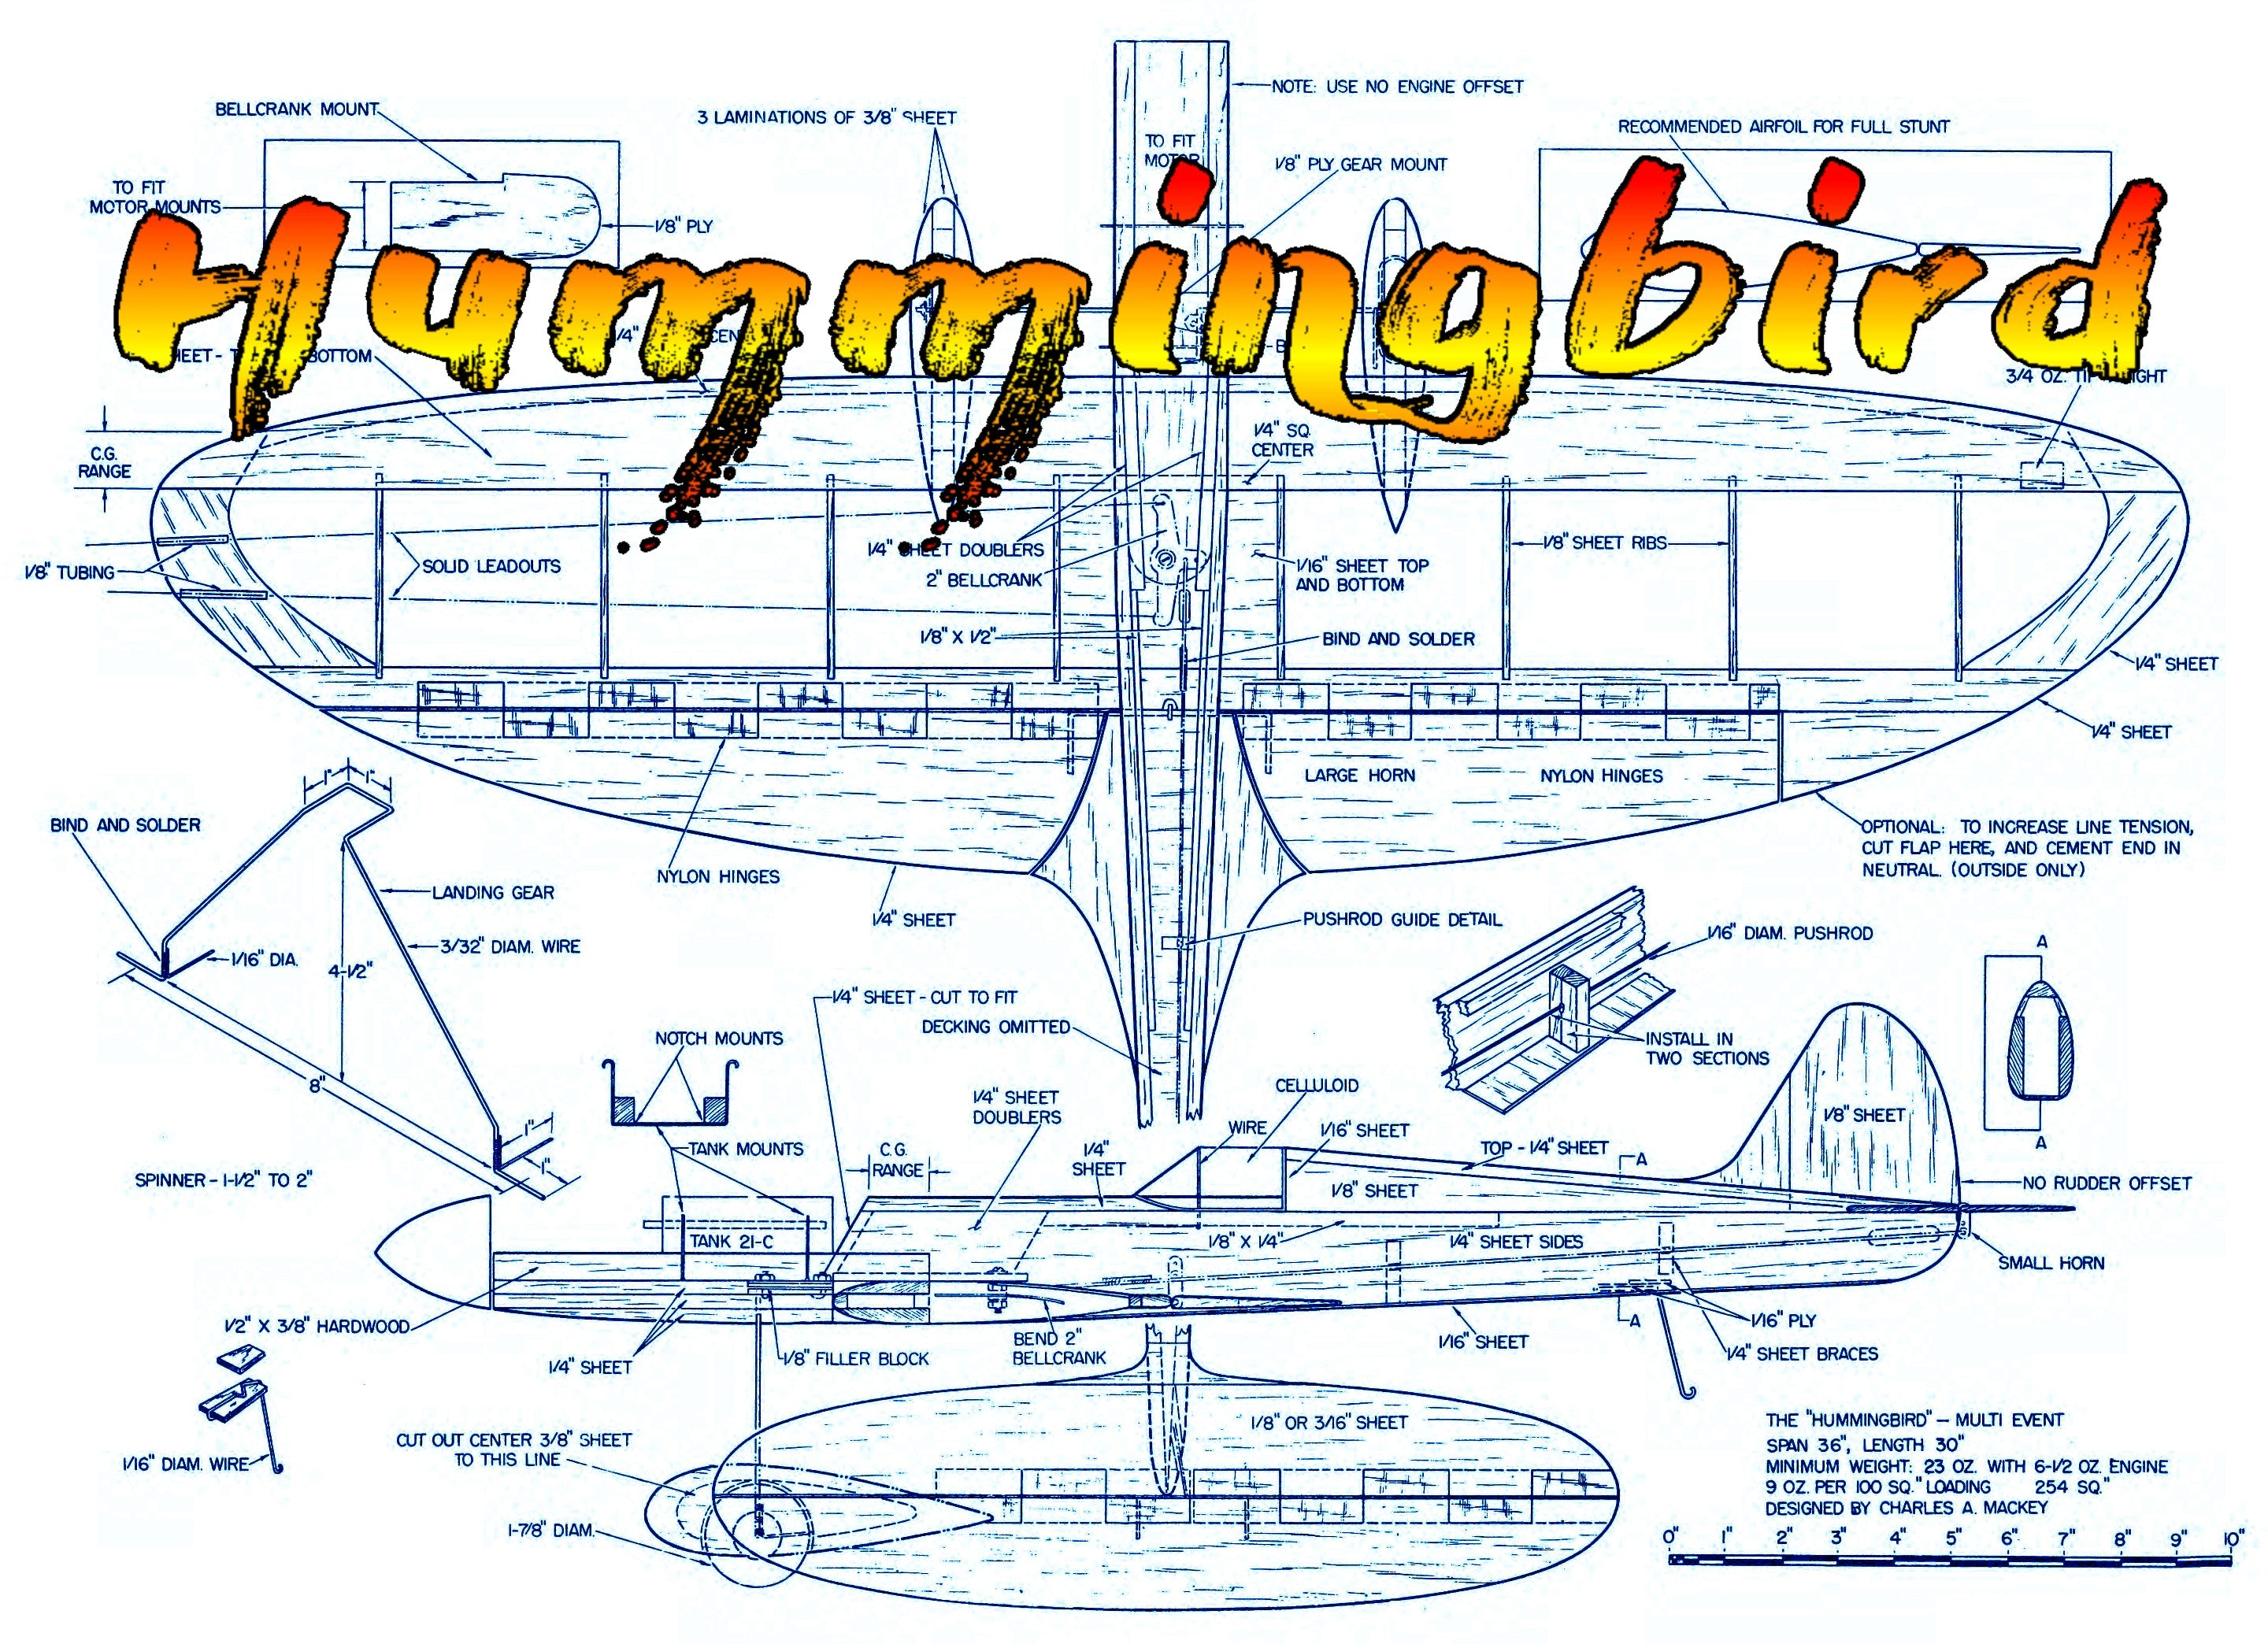 Full Size Plans Vintage 1962 CONTROL LINE STUNTER Hummingbird  fuel it up and let's fly again!""